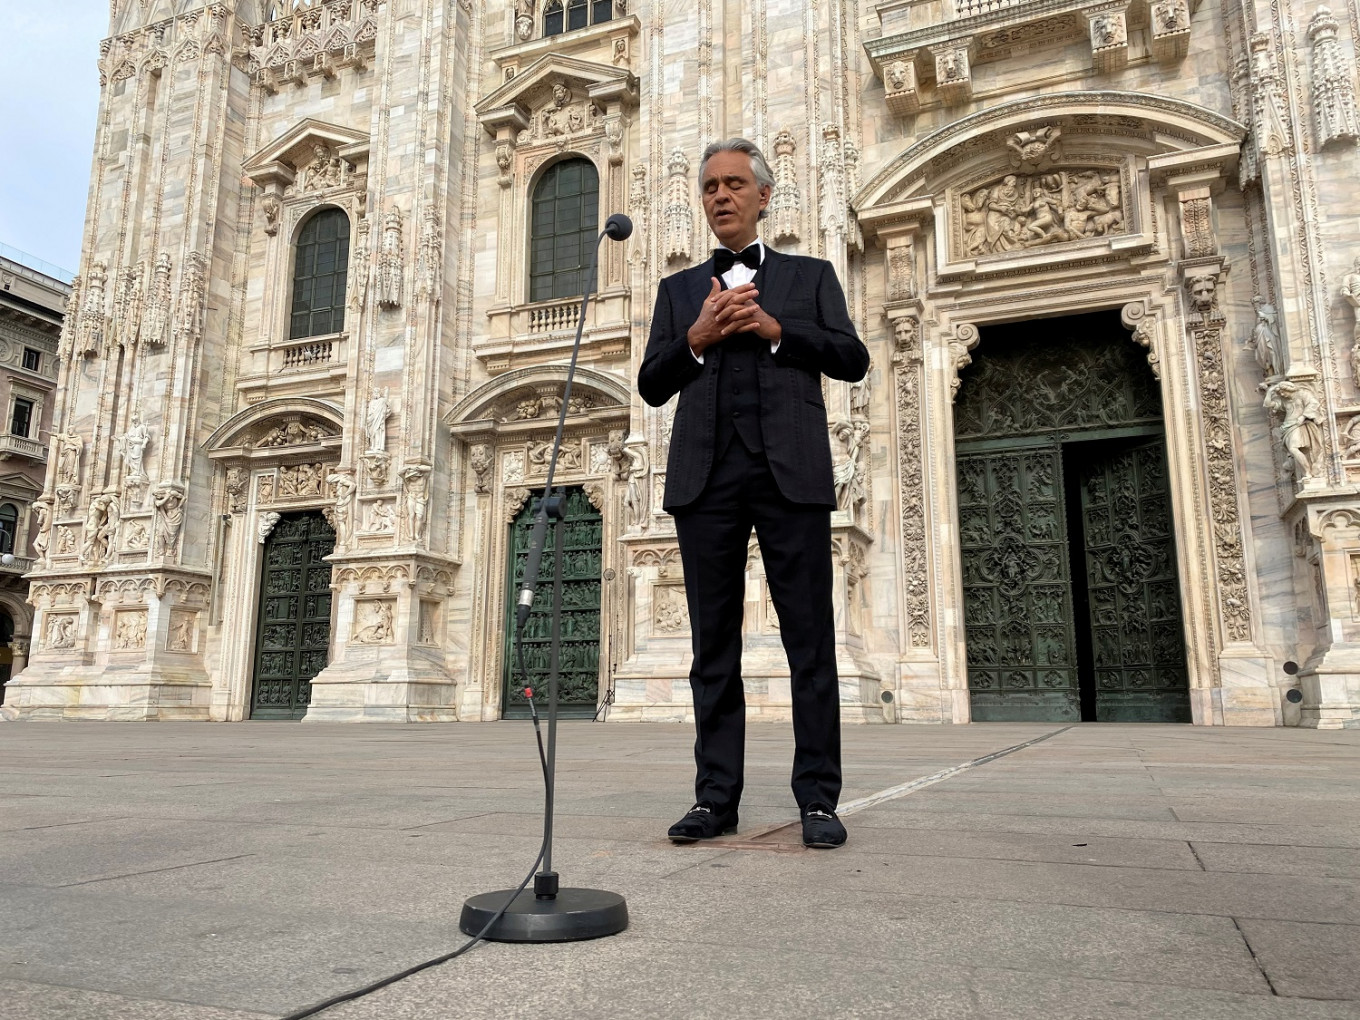 Tenor Andrea Bocelli changes his tune, apologizes for COVID-19 comments